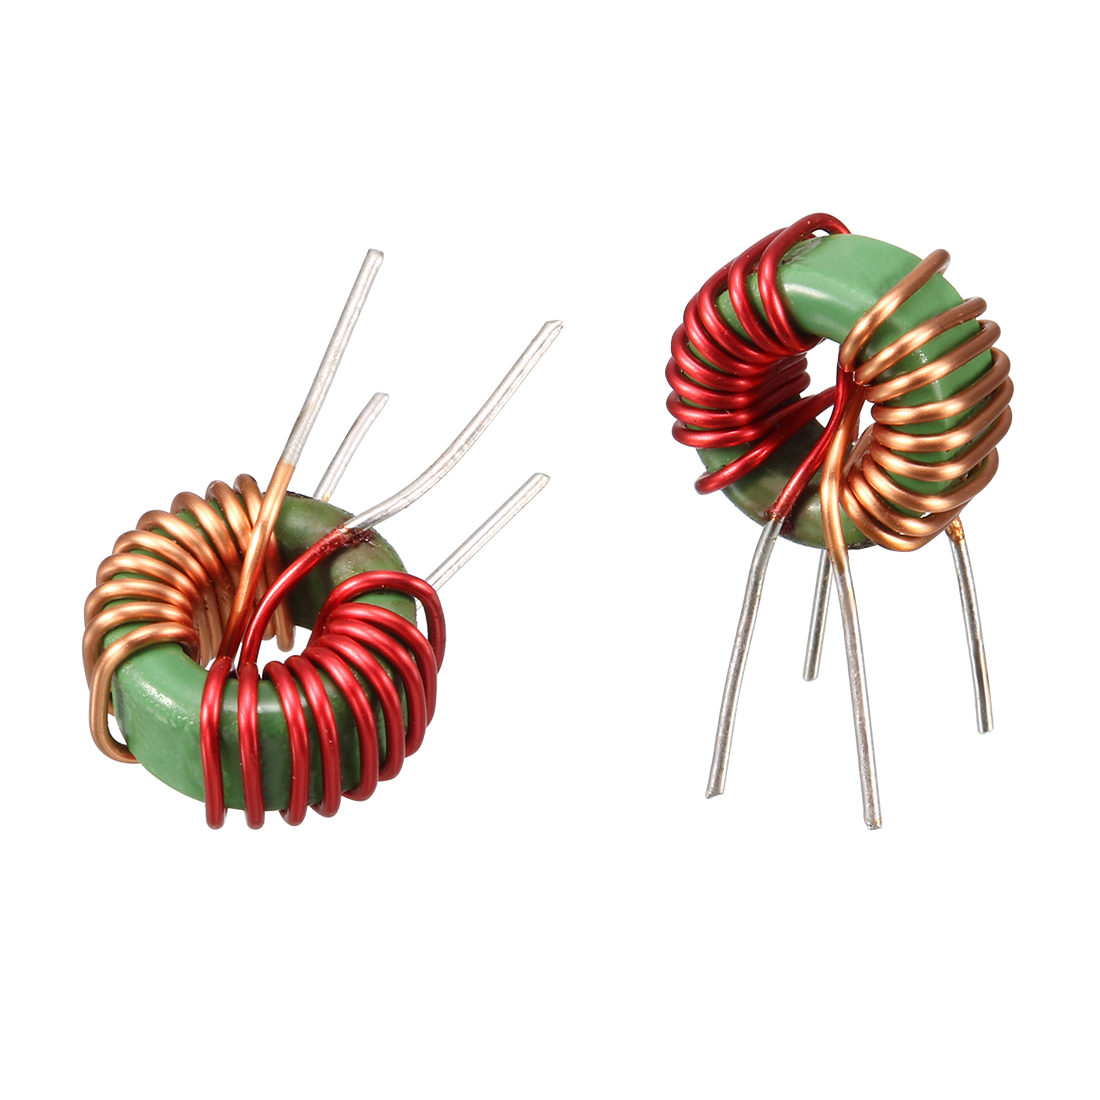 10 Pcs Toroid Core Common Mode Inductor Choke 800UH-1MH 40mOhm 5A Coil